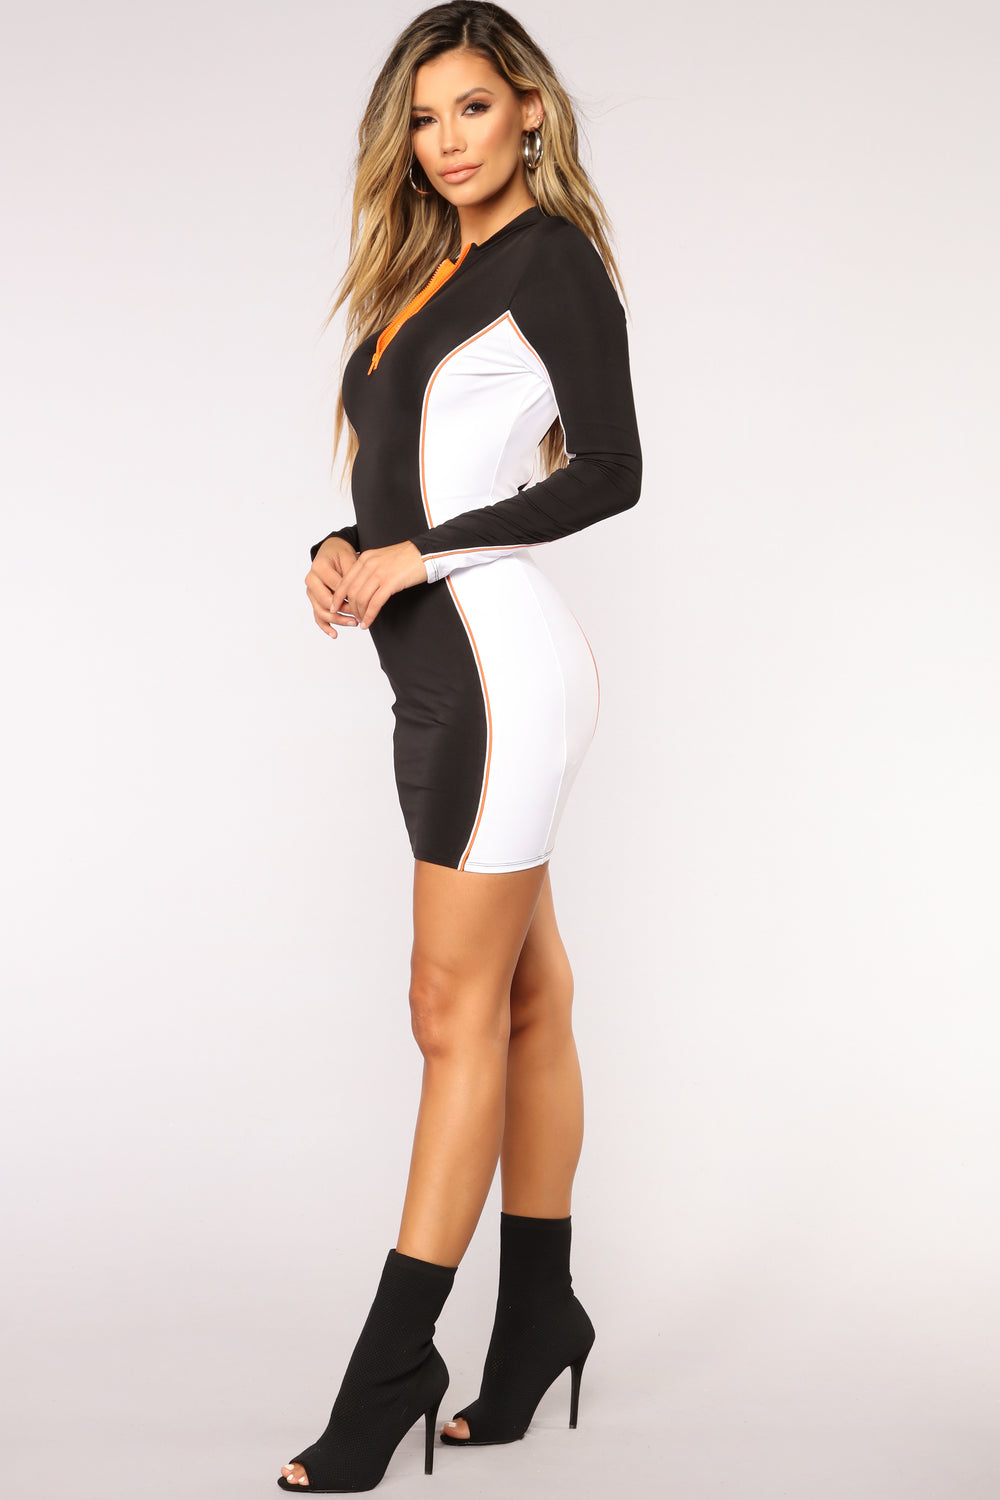 Remix To Ignition Colorblock Dress - Black